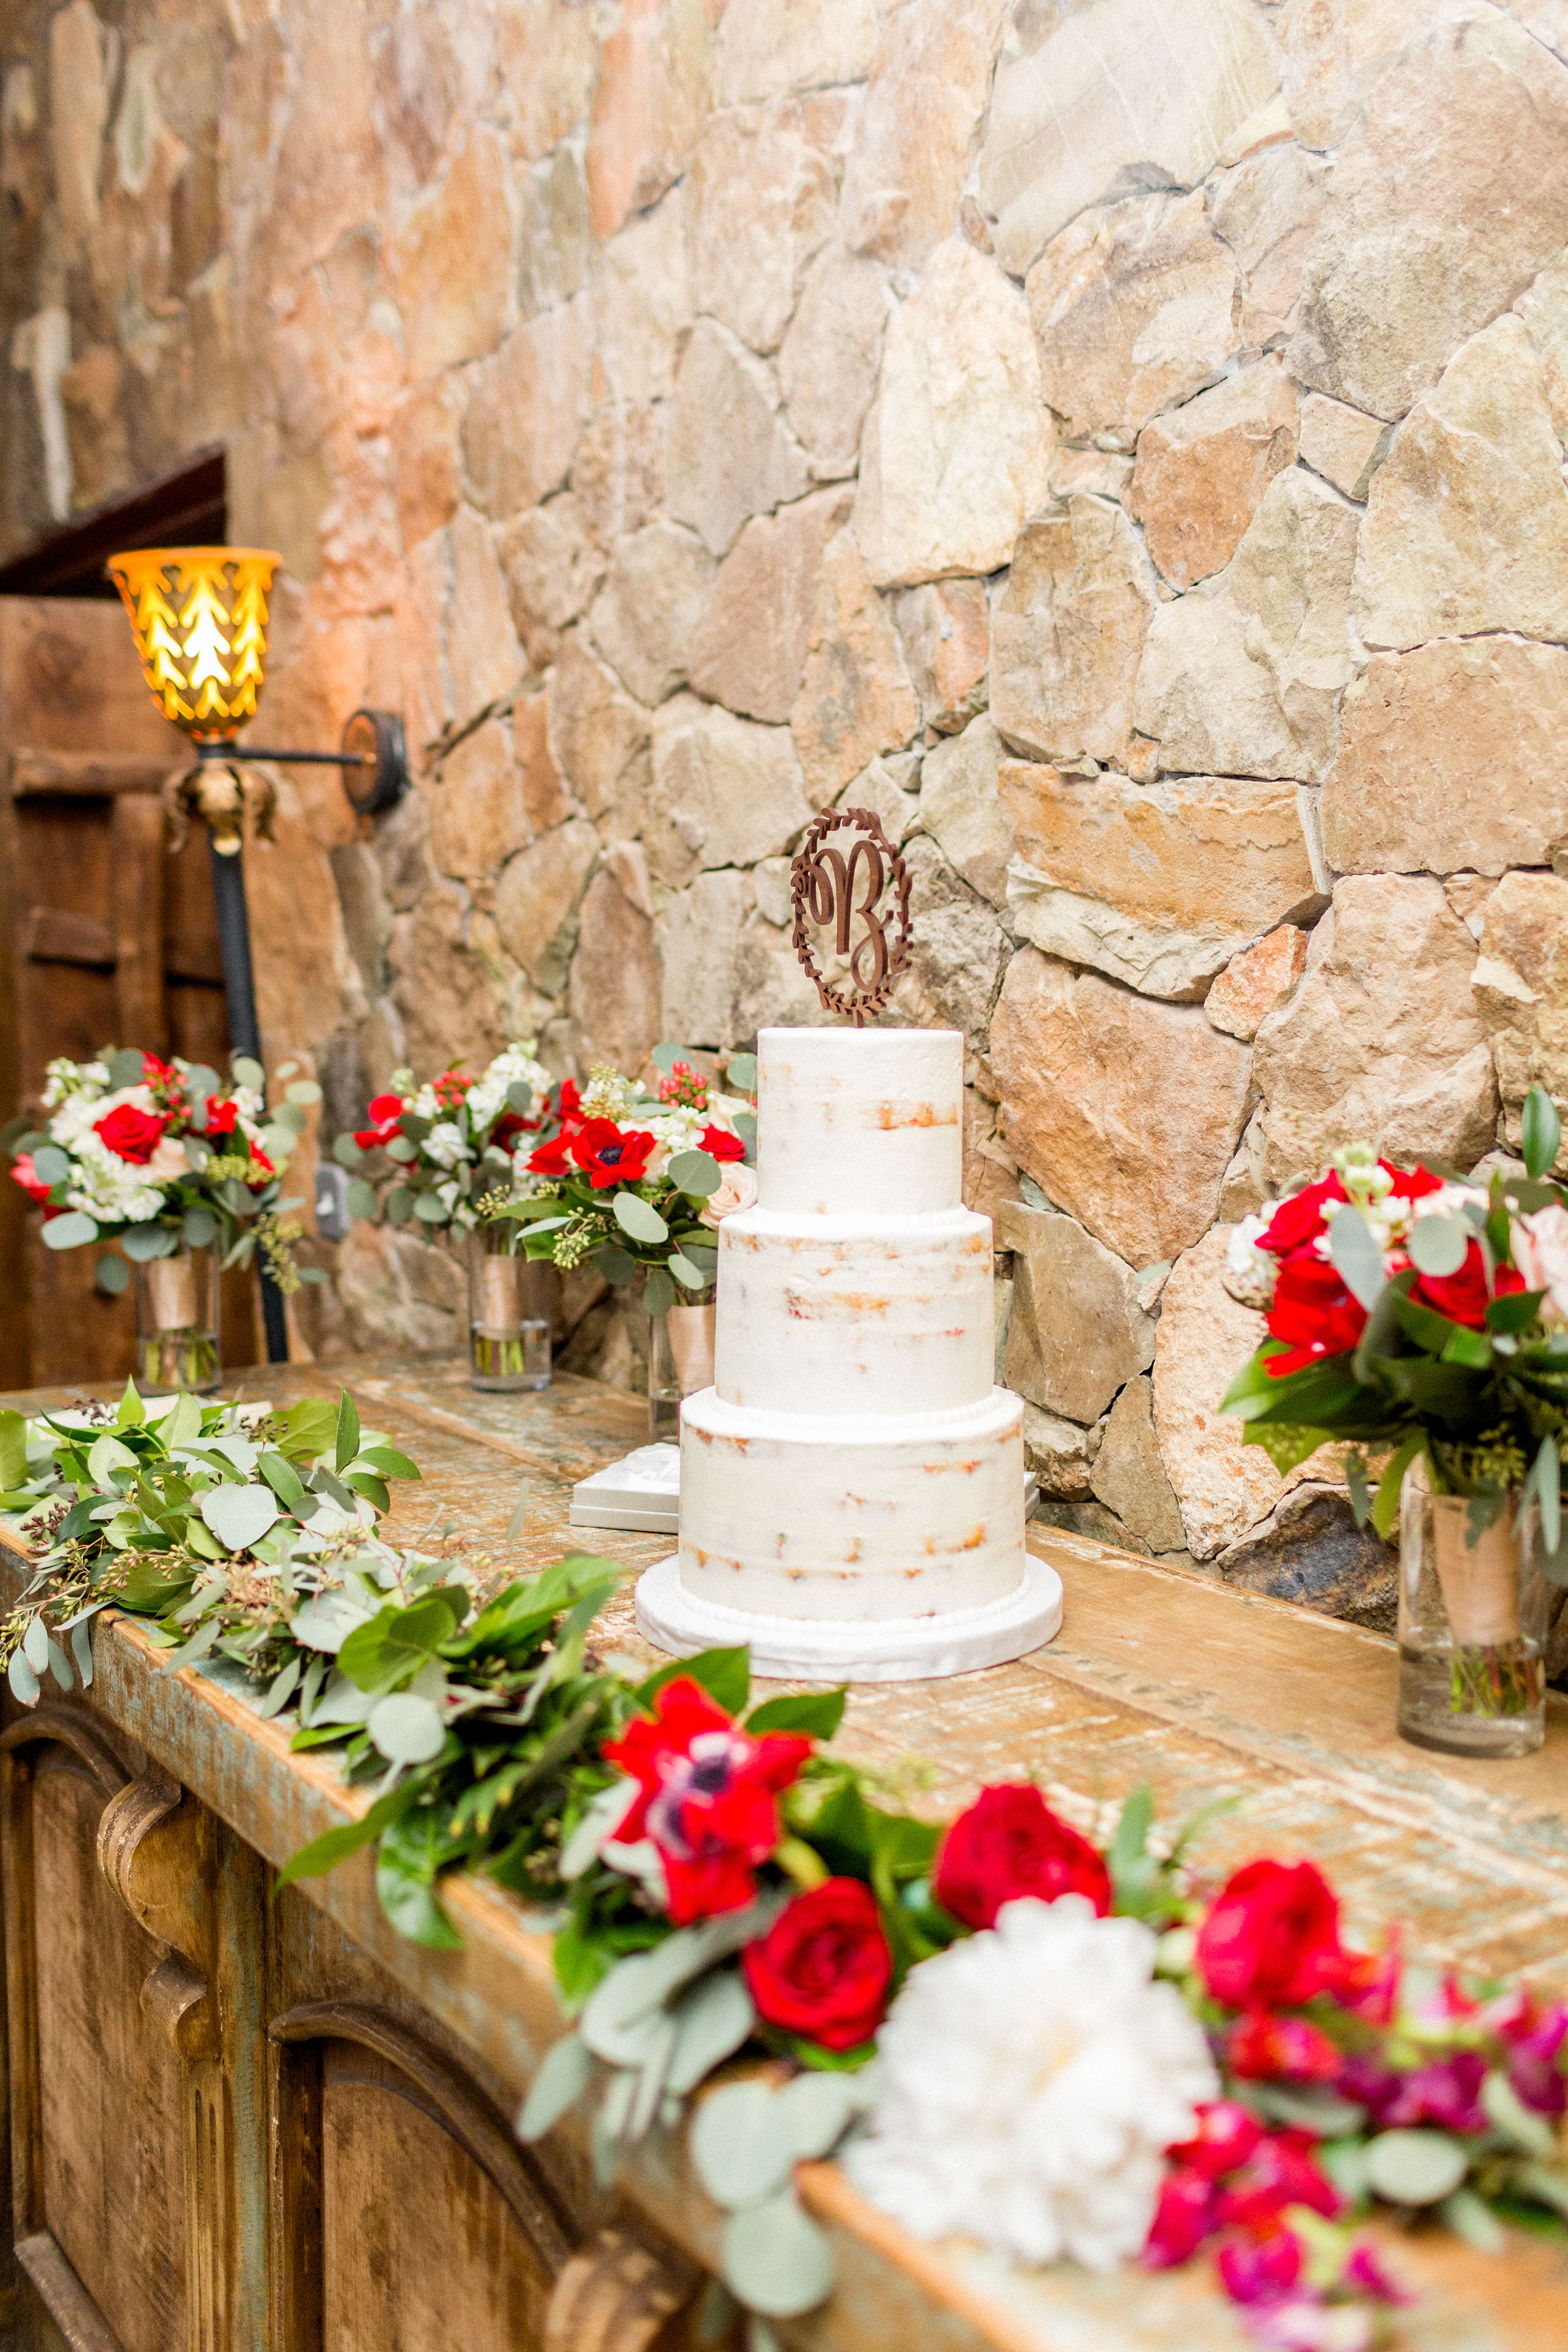 Greenery blends to flowers in this mantle spray at Stone Tower Winery. The cake was surrounded by bridal bouquets in cylinders. Photography by Candice Adele.